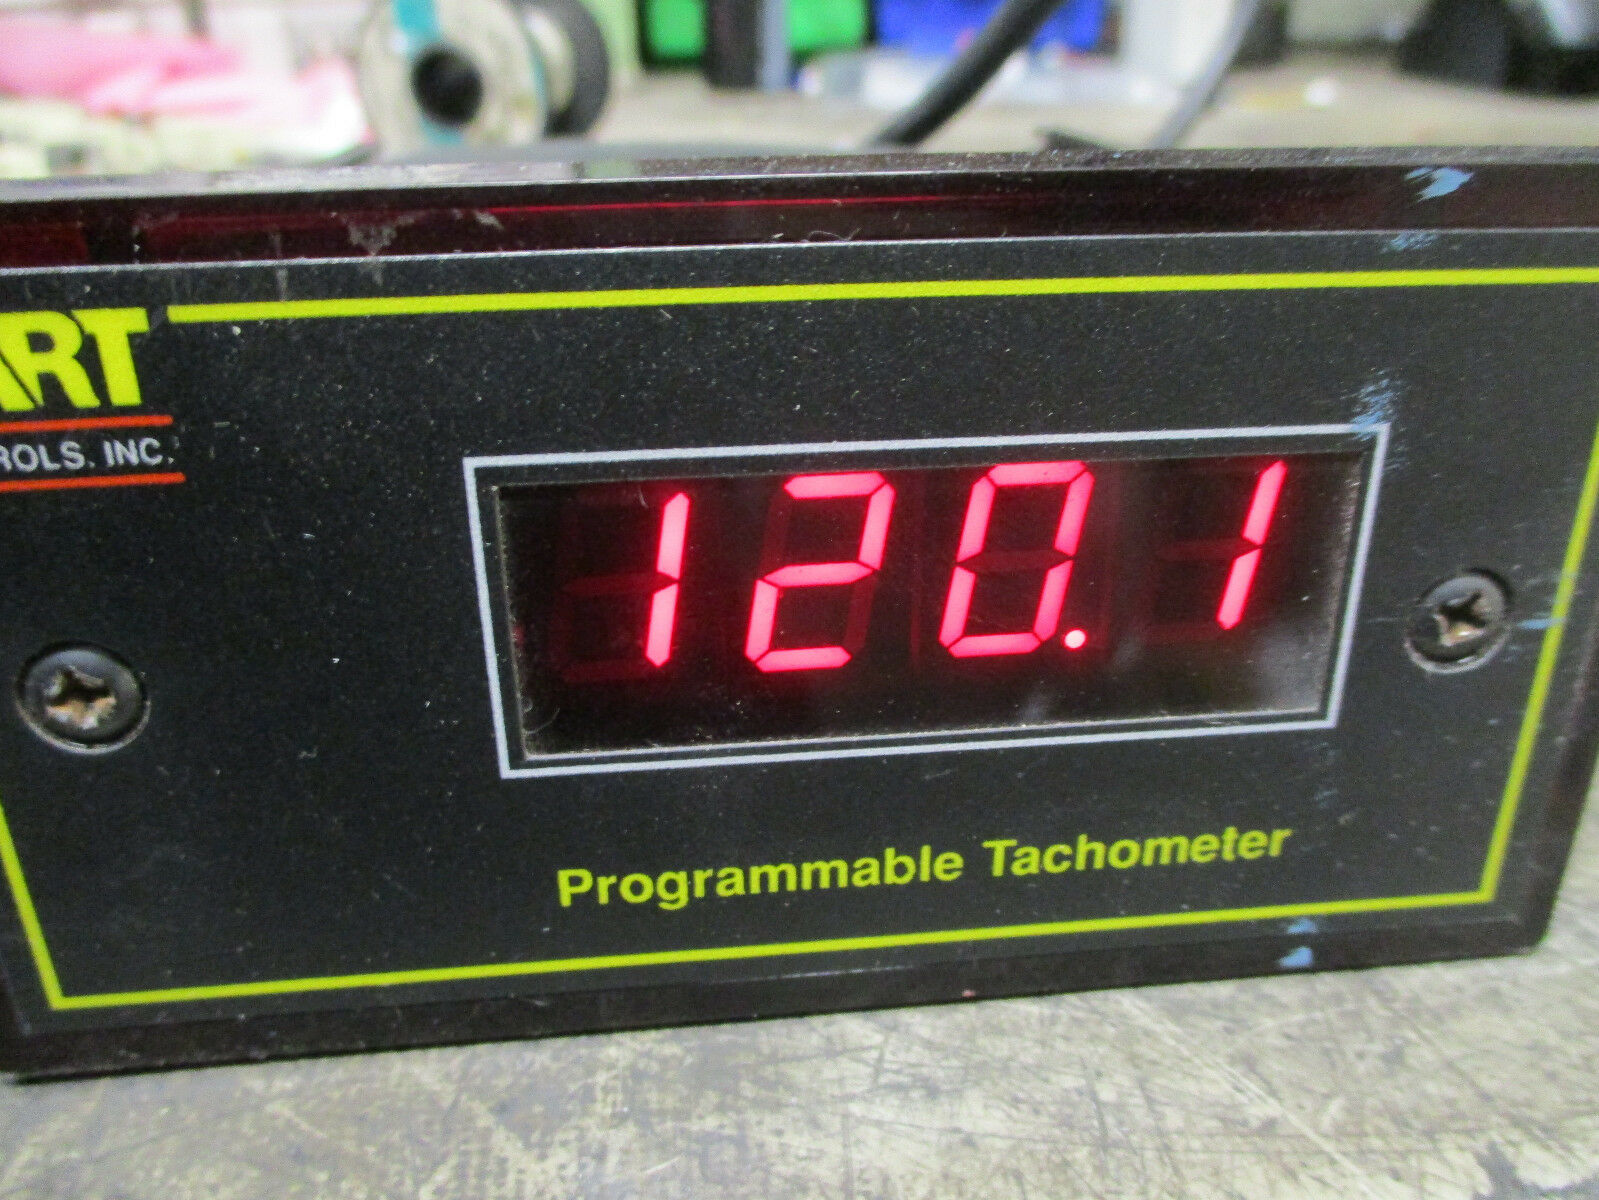 DART DM4004 Series programmable Tachometer 120VAC DARt Control DM4004 Tested